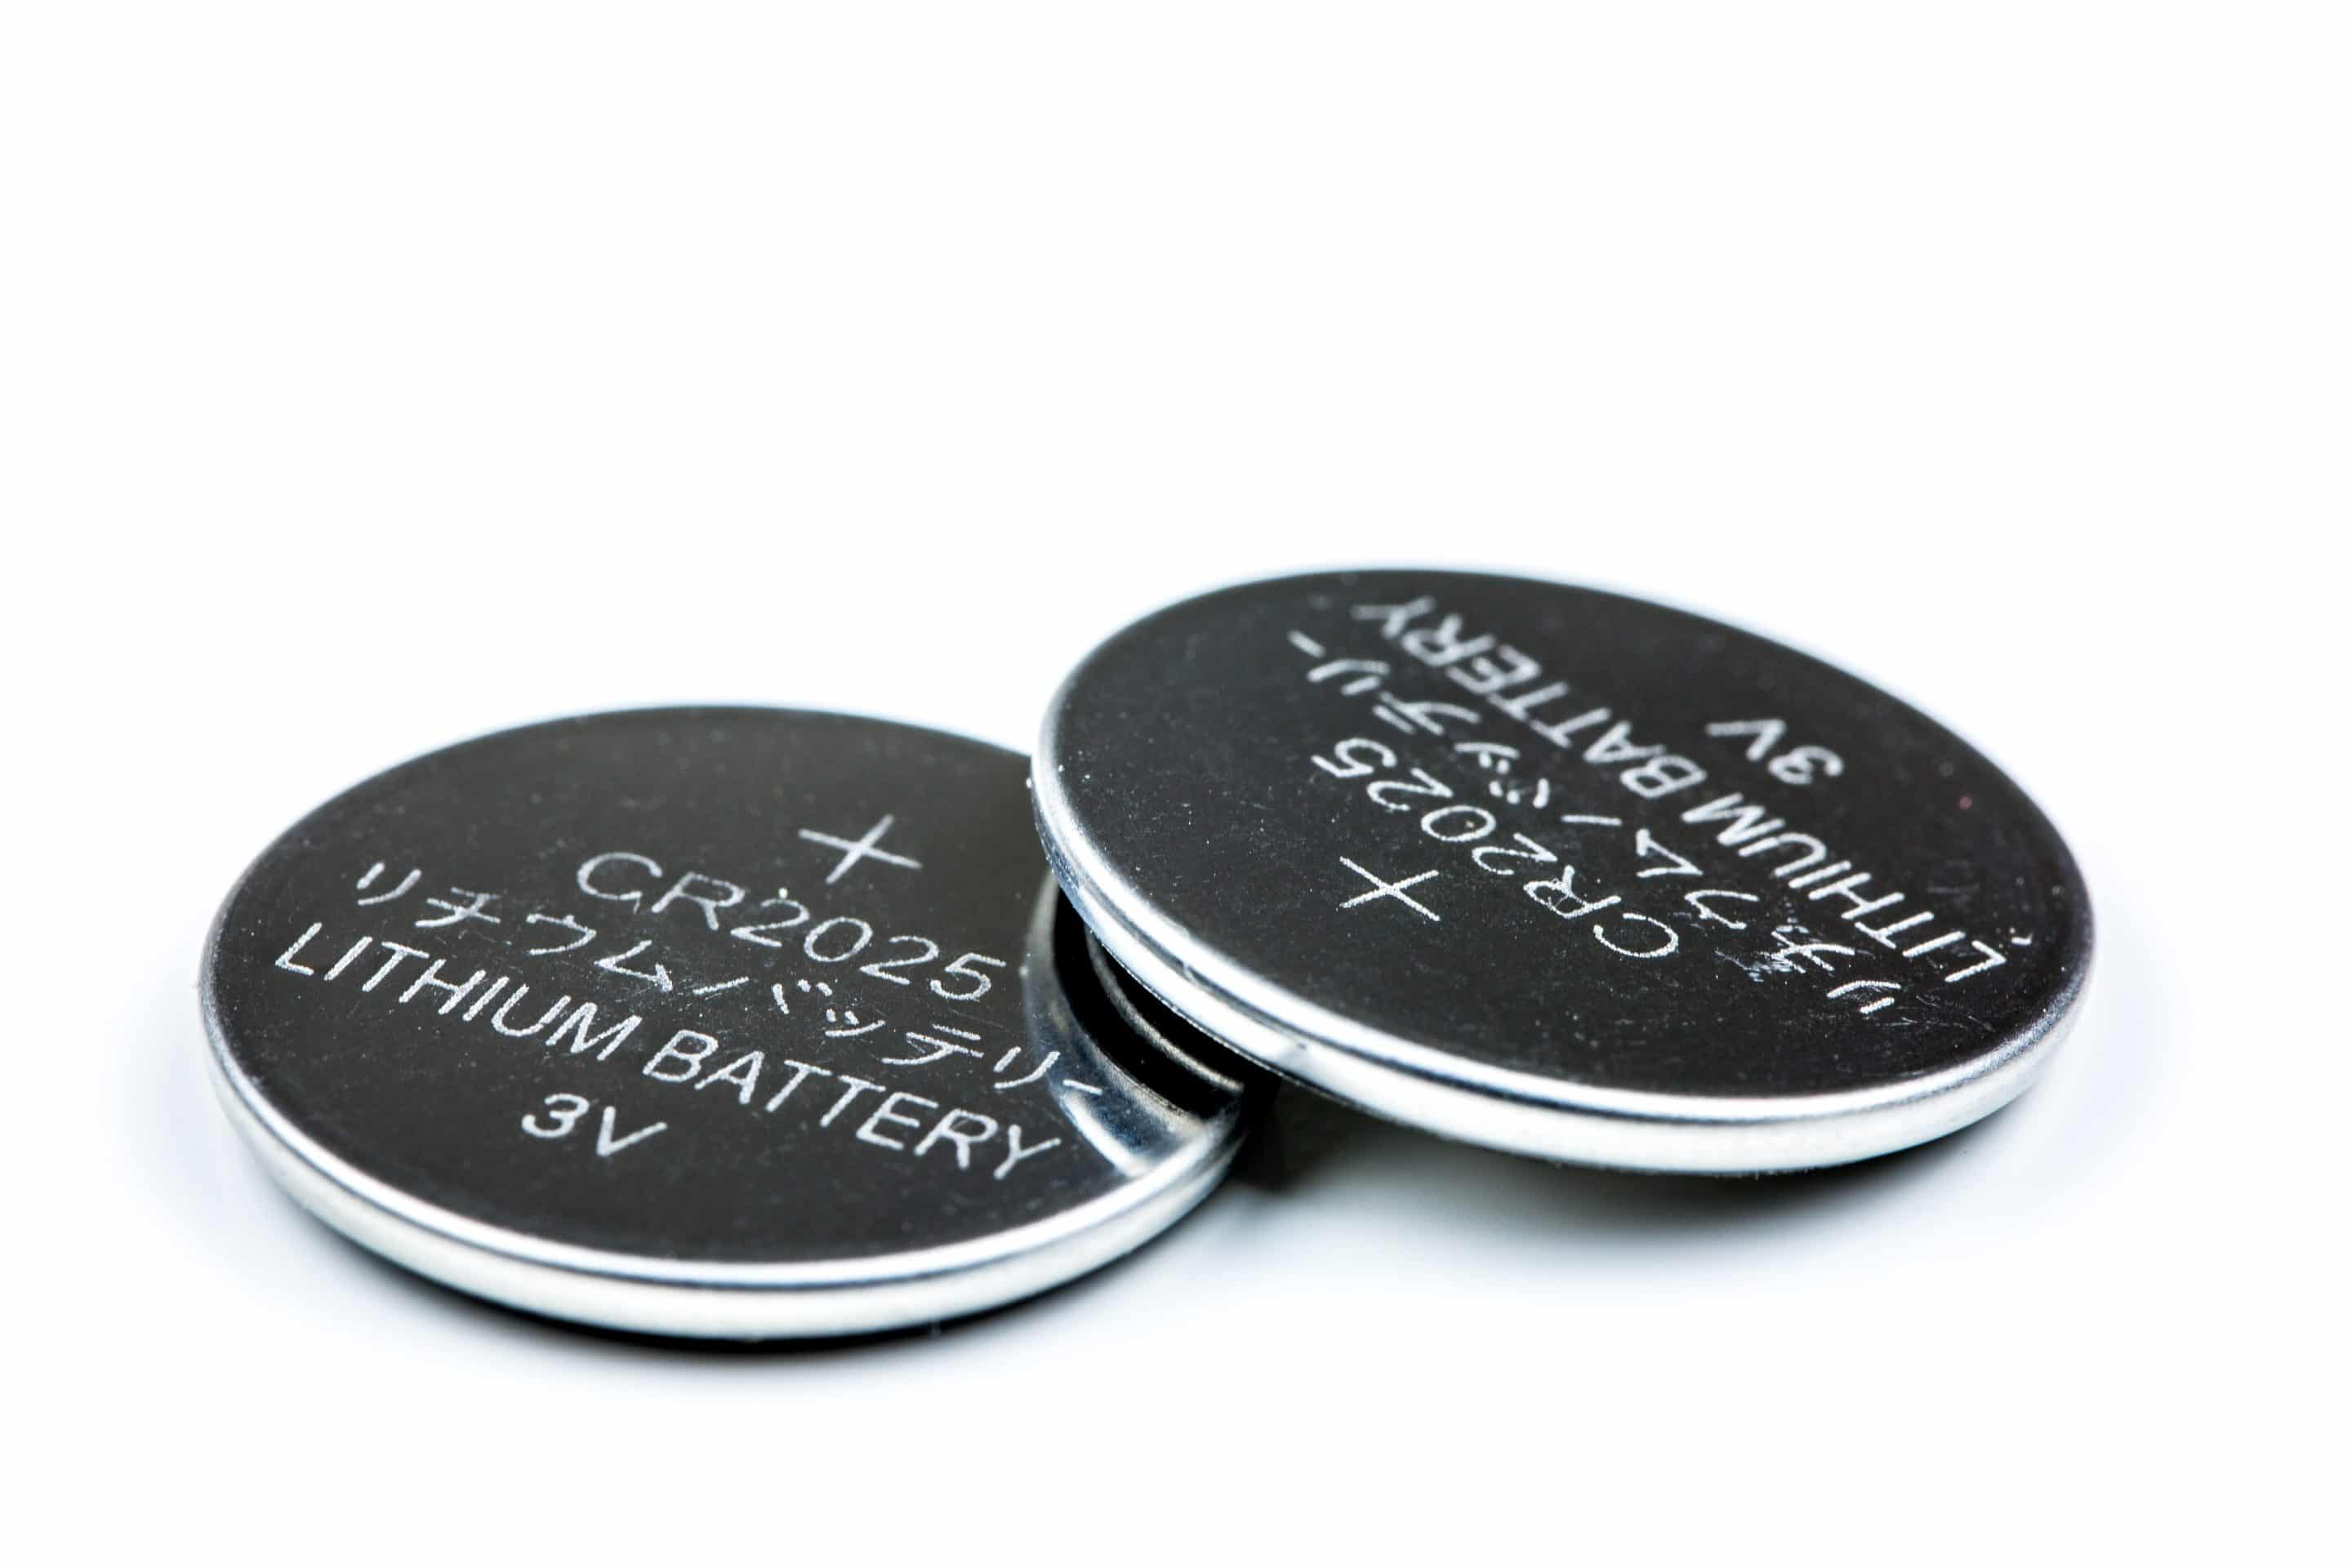 CR2032 vs BR2032 vs LIR2032 Coin Cell Batteries | Side-by-Side Comparison